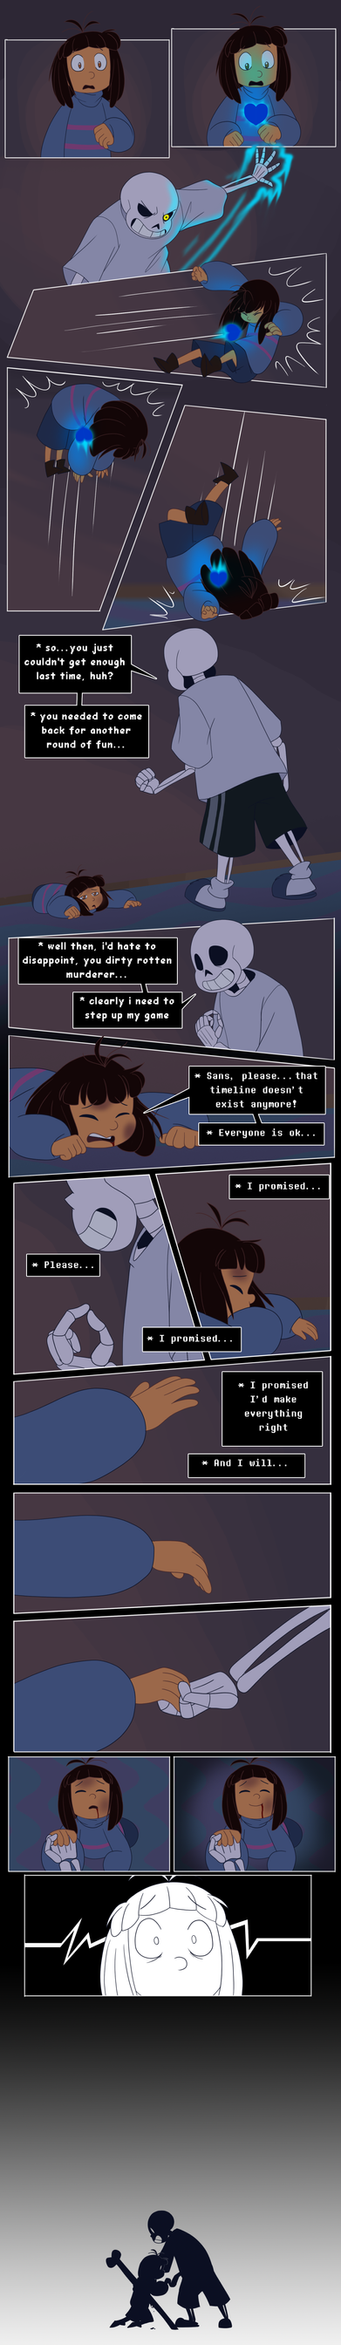 Undertale - Consequences - 3 of 4 by TC-96